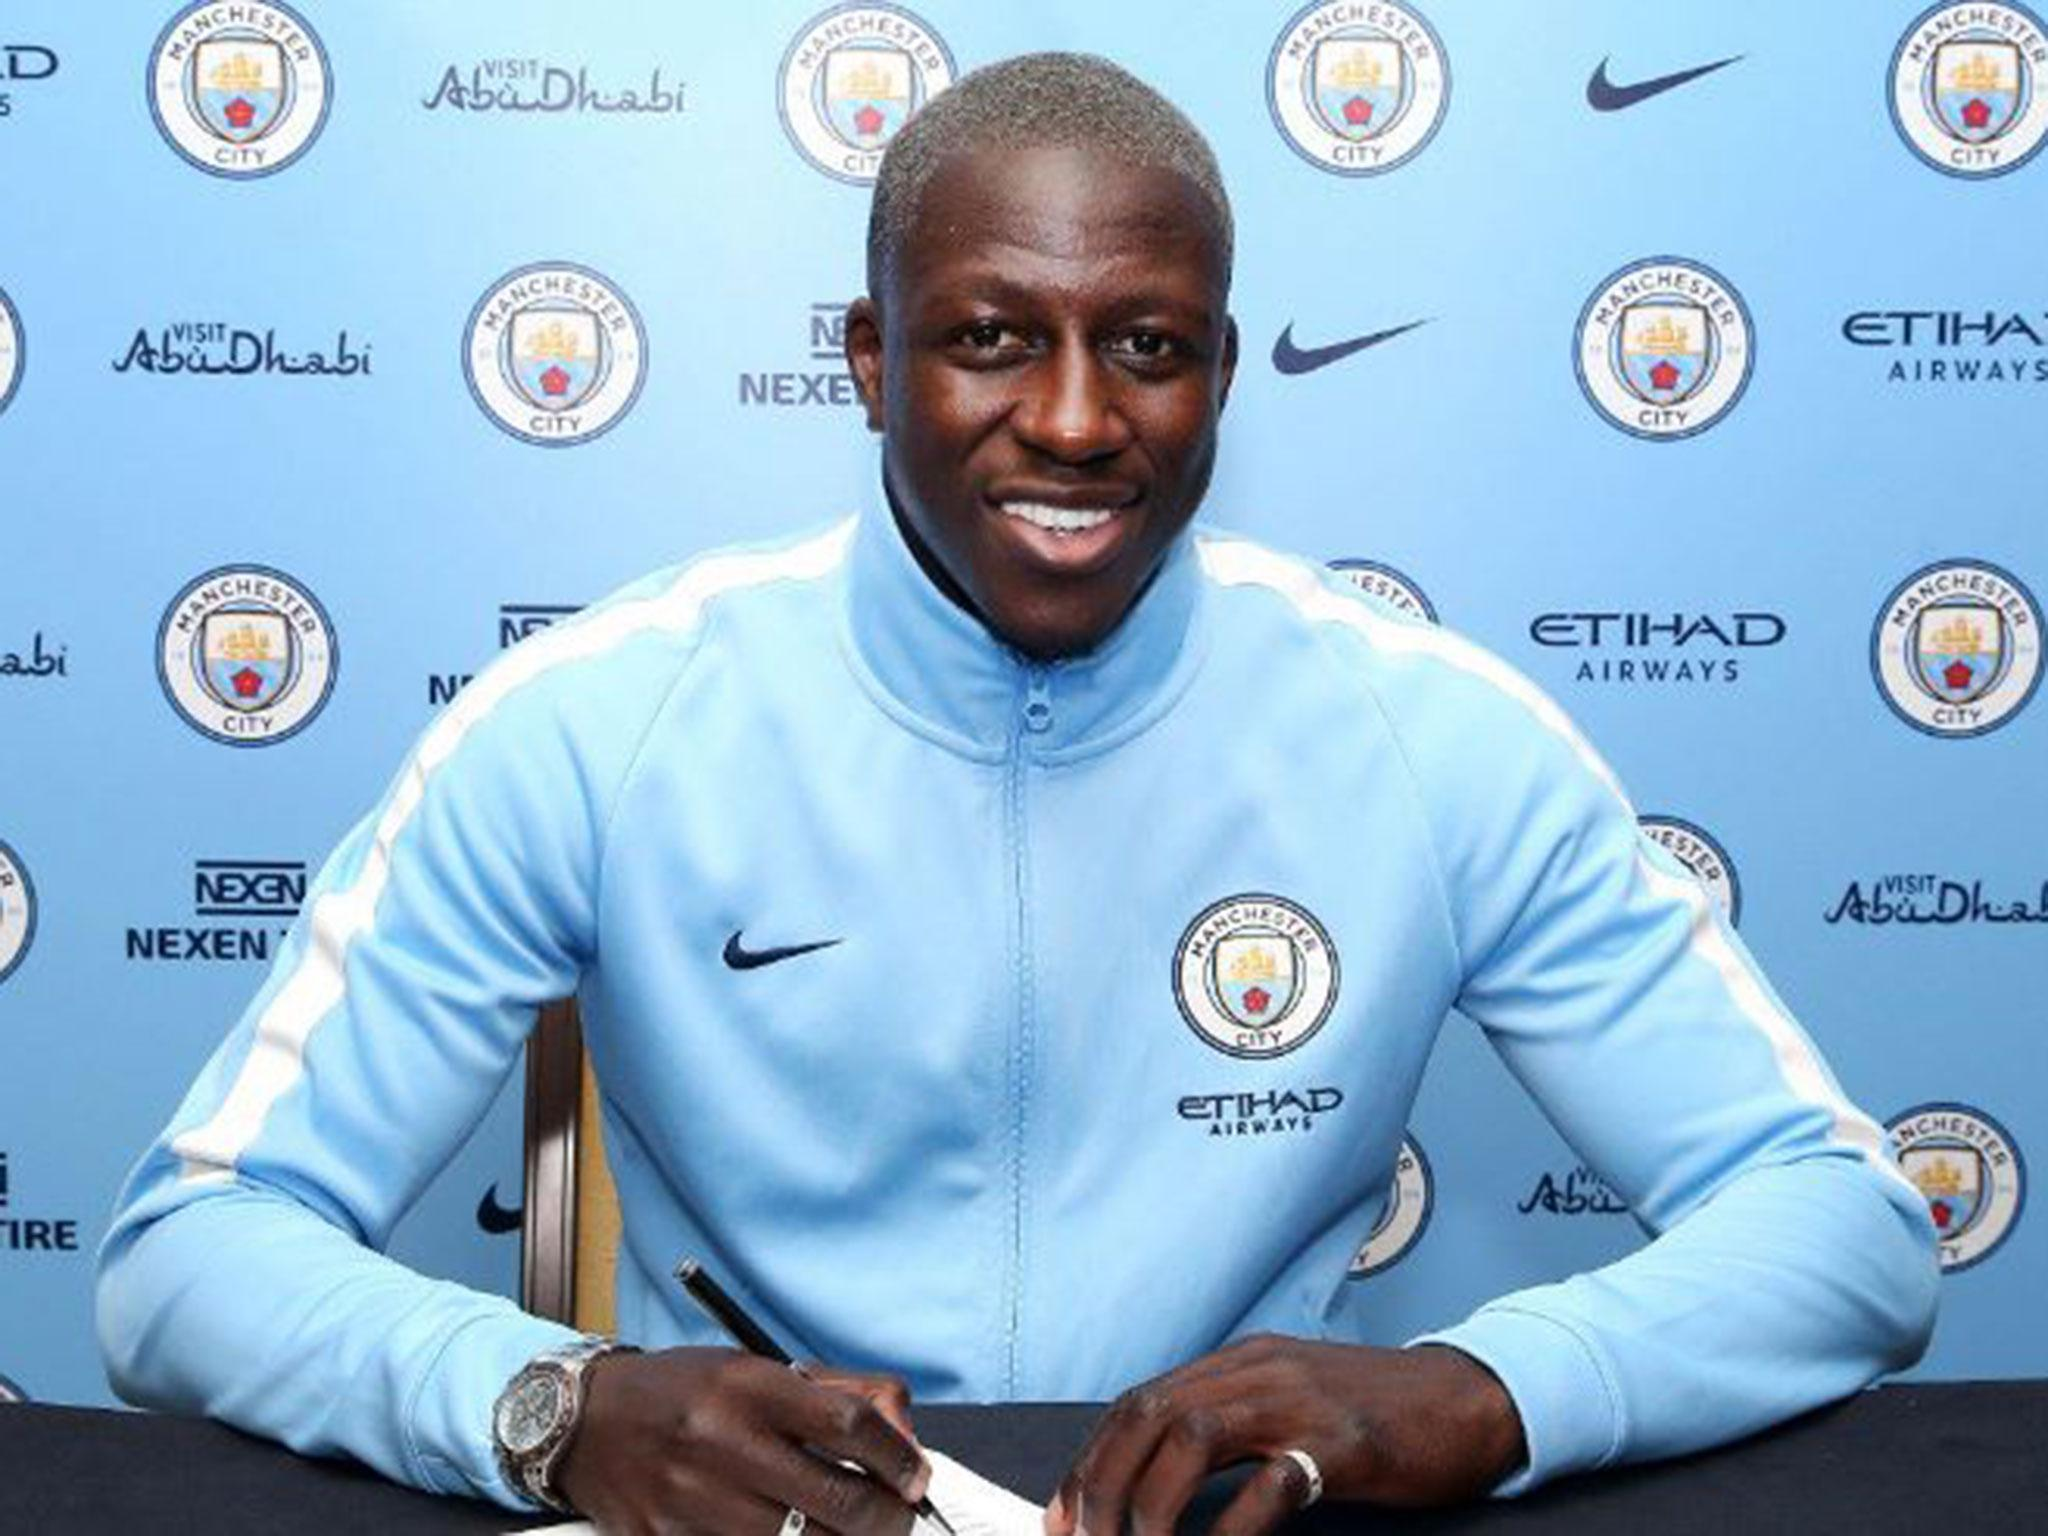 Manchester City sign Benjamin Mendy for world record fee as summer